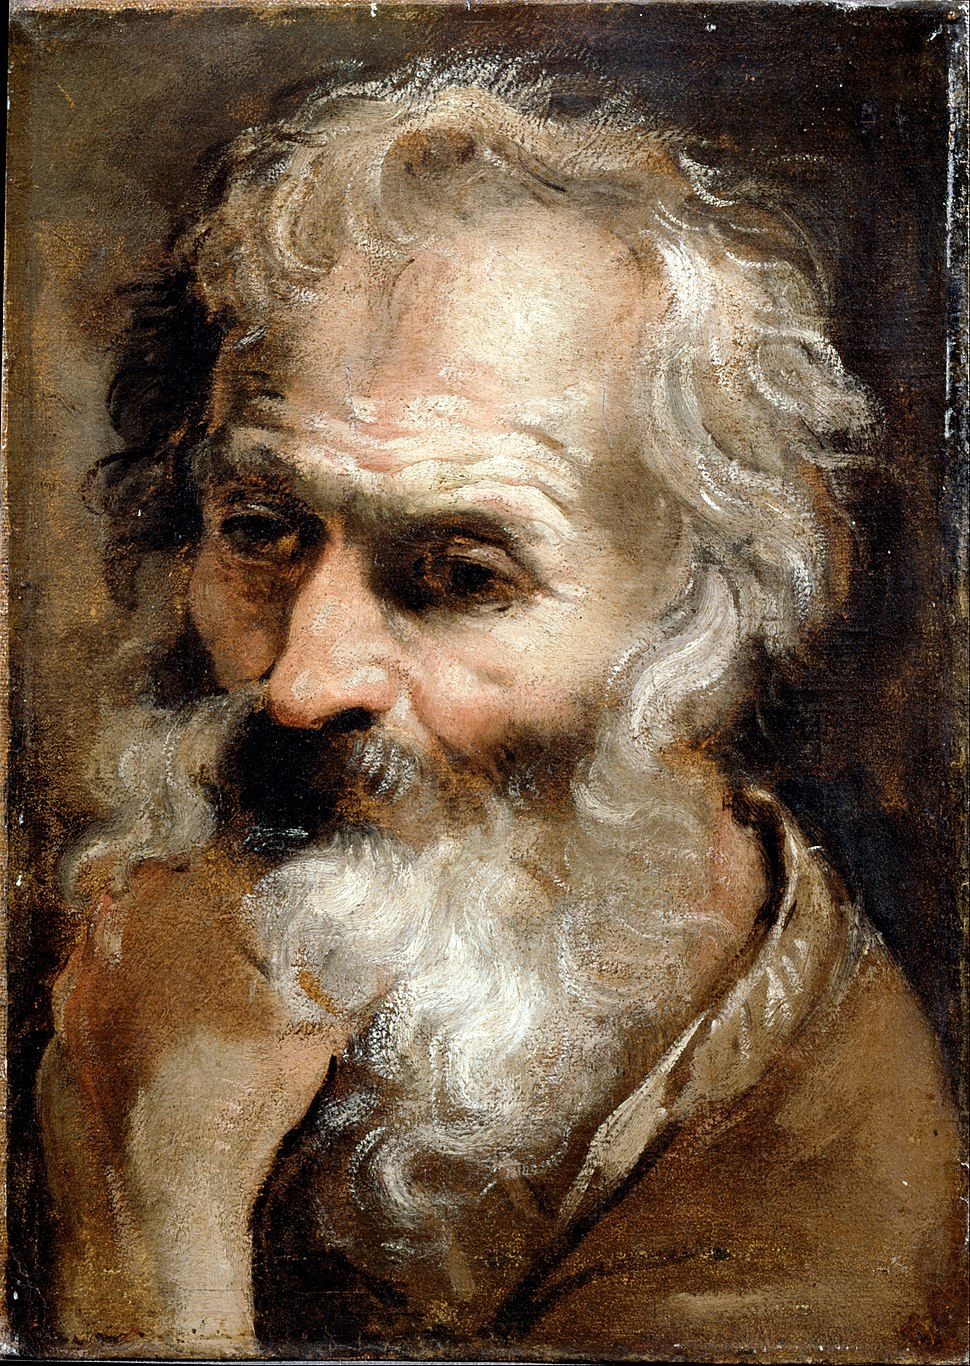 Carracci, Annibale - Head of an Old Man - Google Art Project